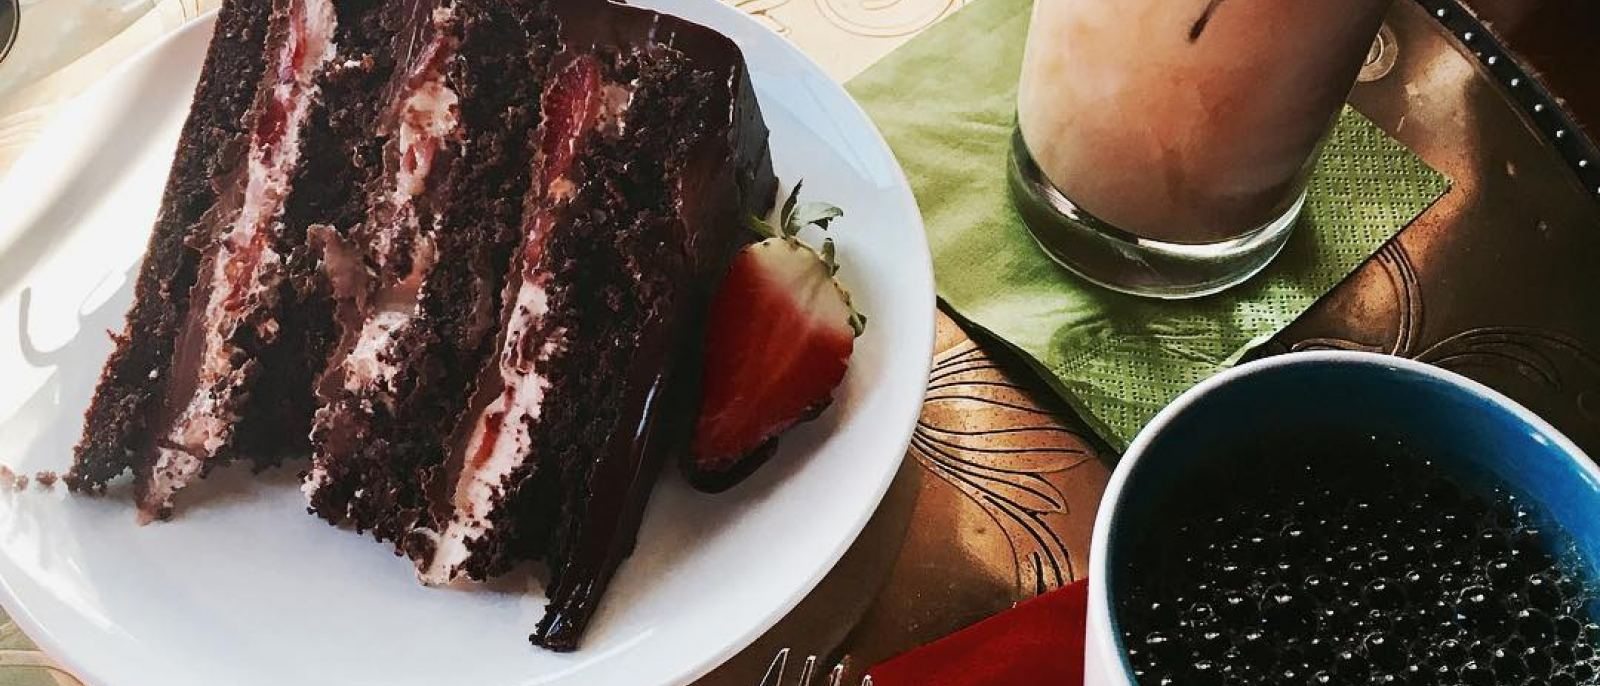 Chocolate strawberry cake at Loft Cafe | Instagram by @gina.y.kang